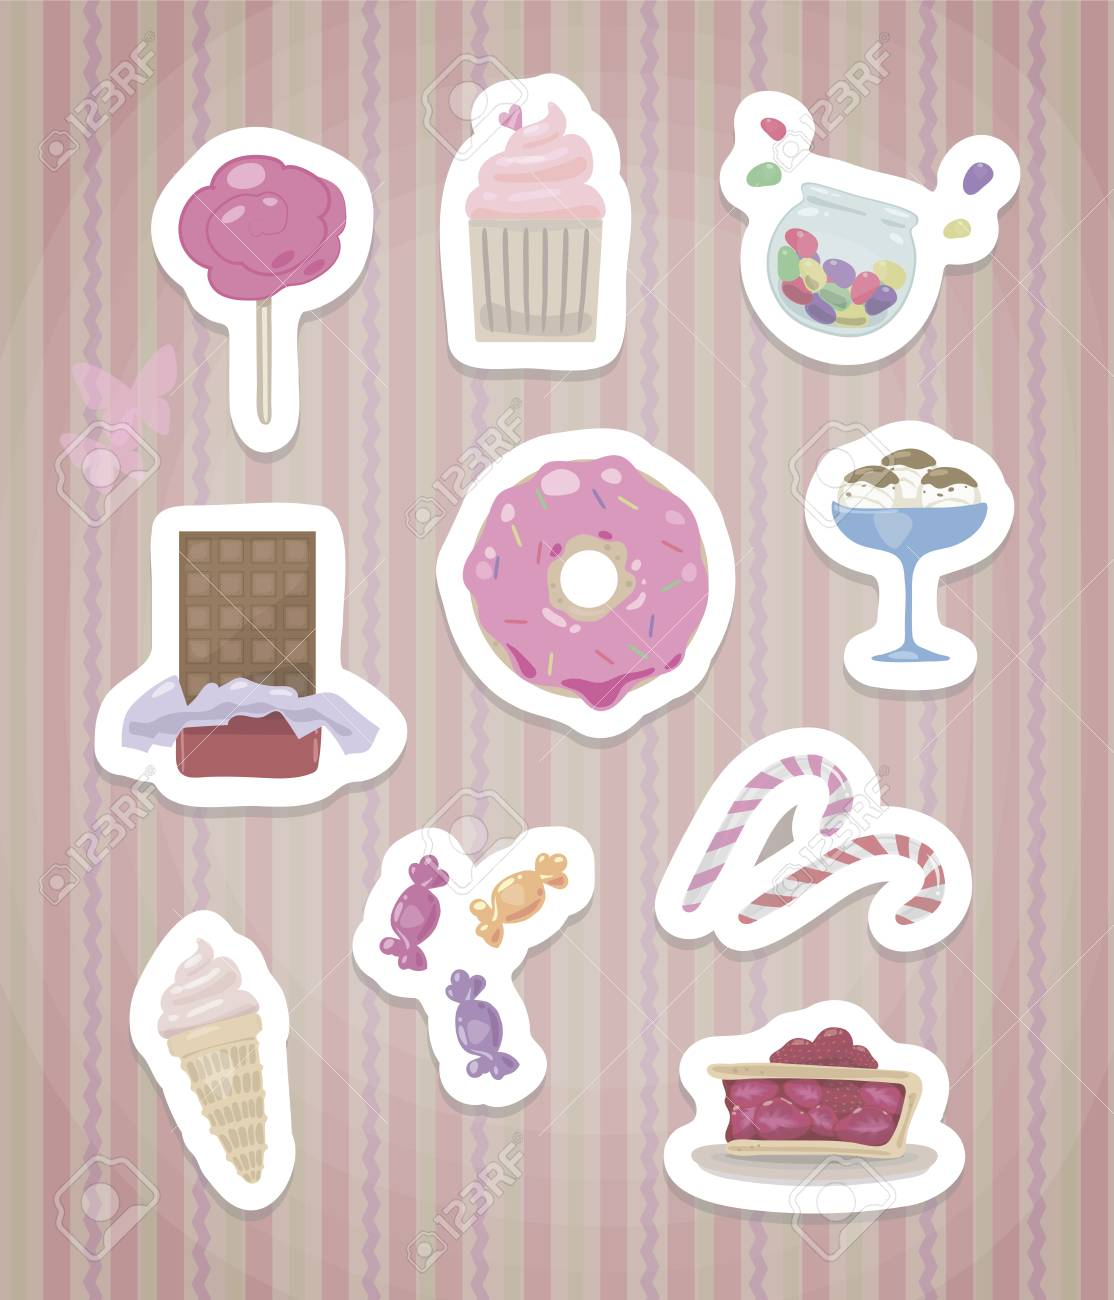 A Set Of Stickers With Cute Sweet Isolated With A White Edge